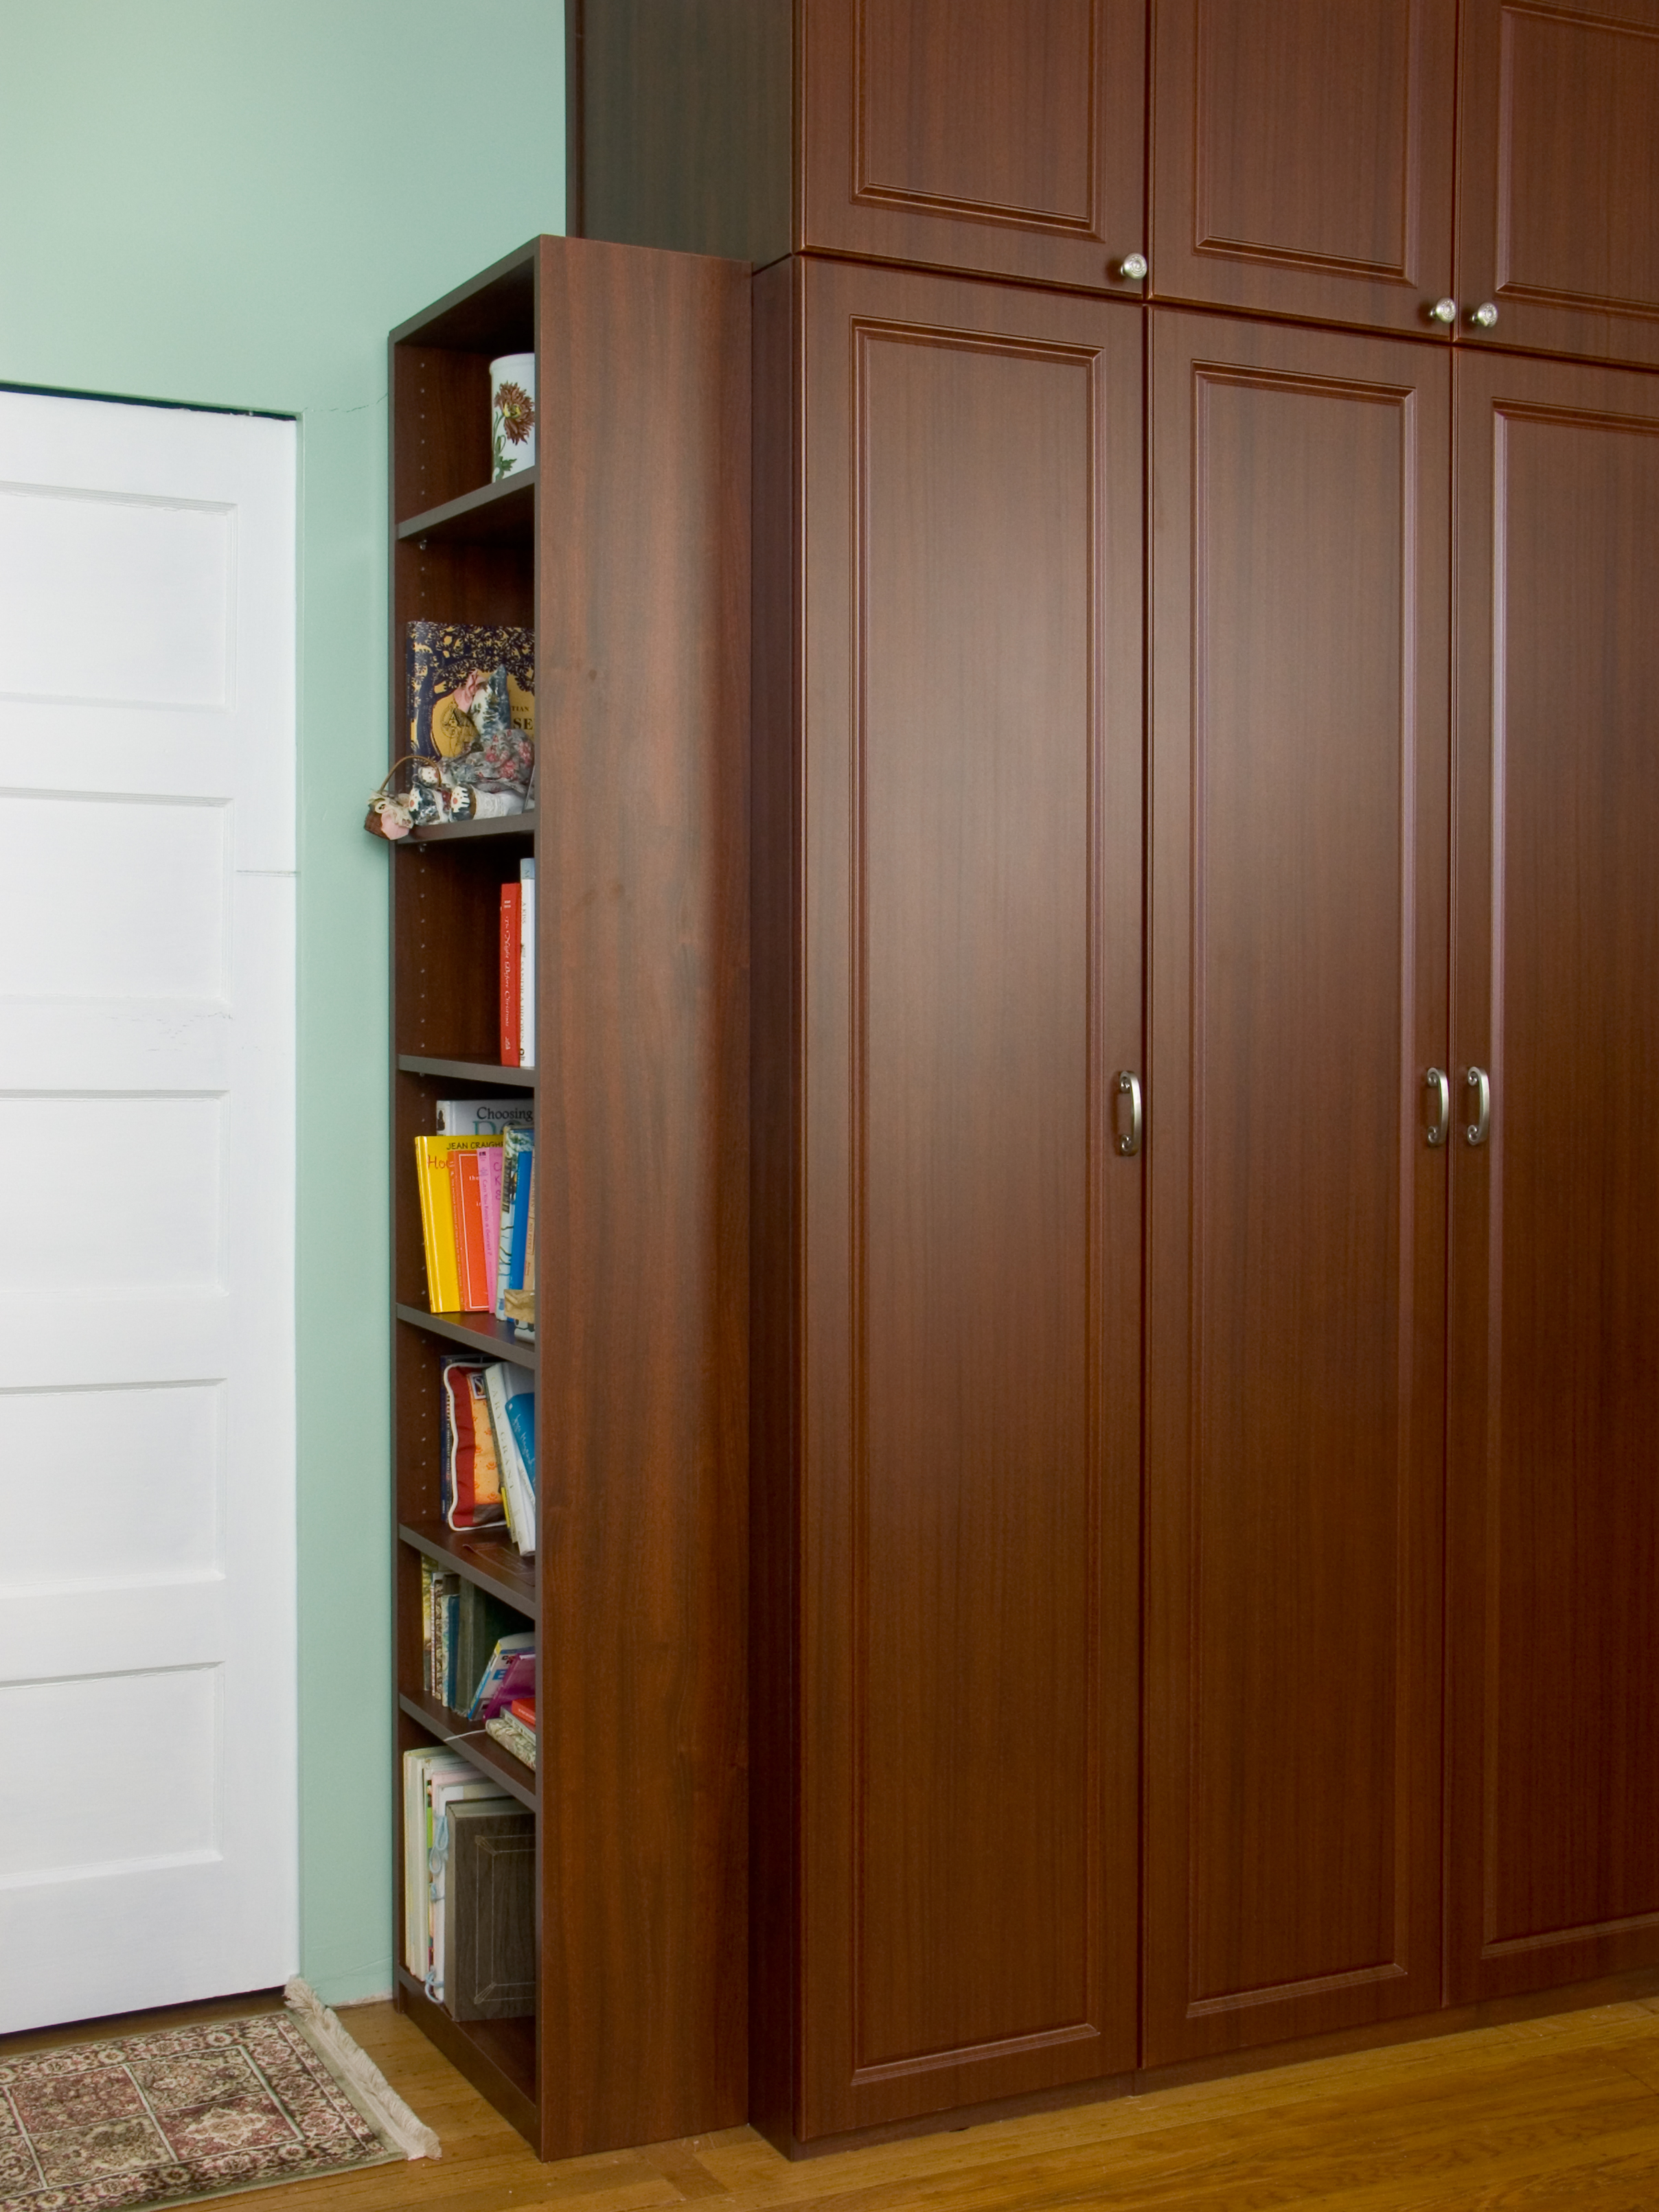 March 15-Spikers Cabinets-007.JPG